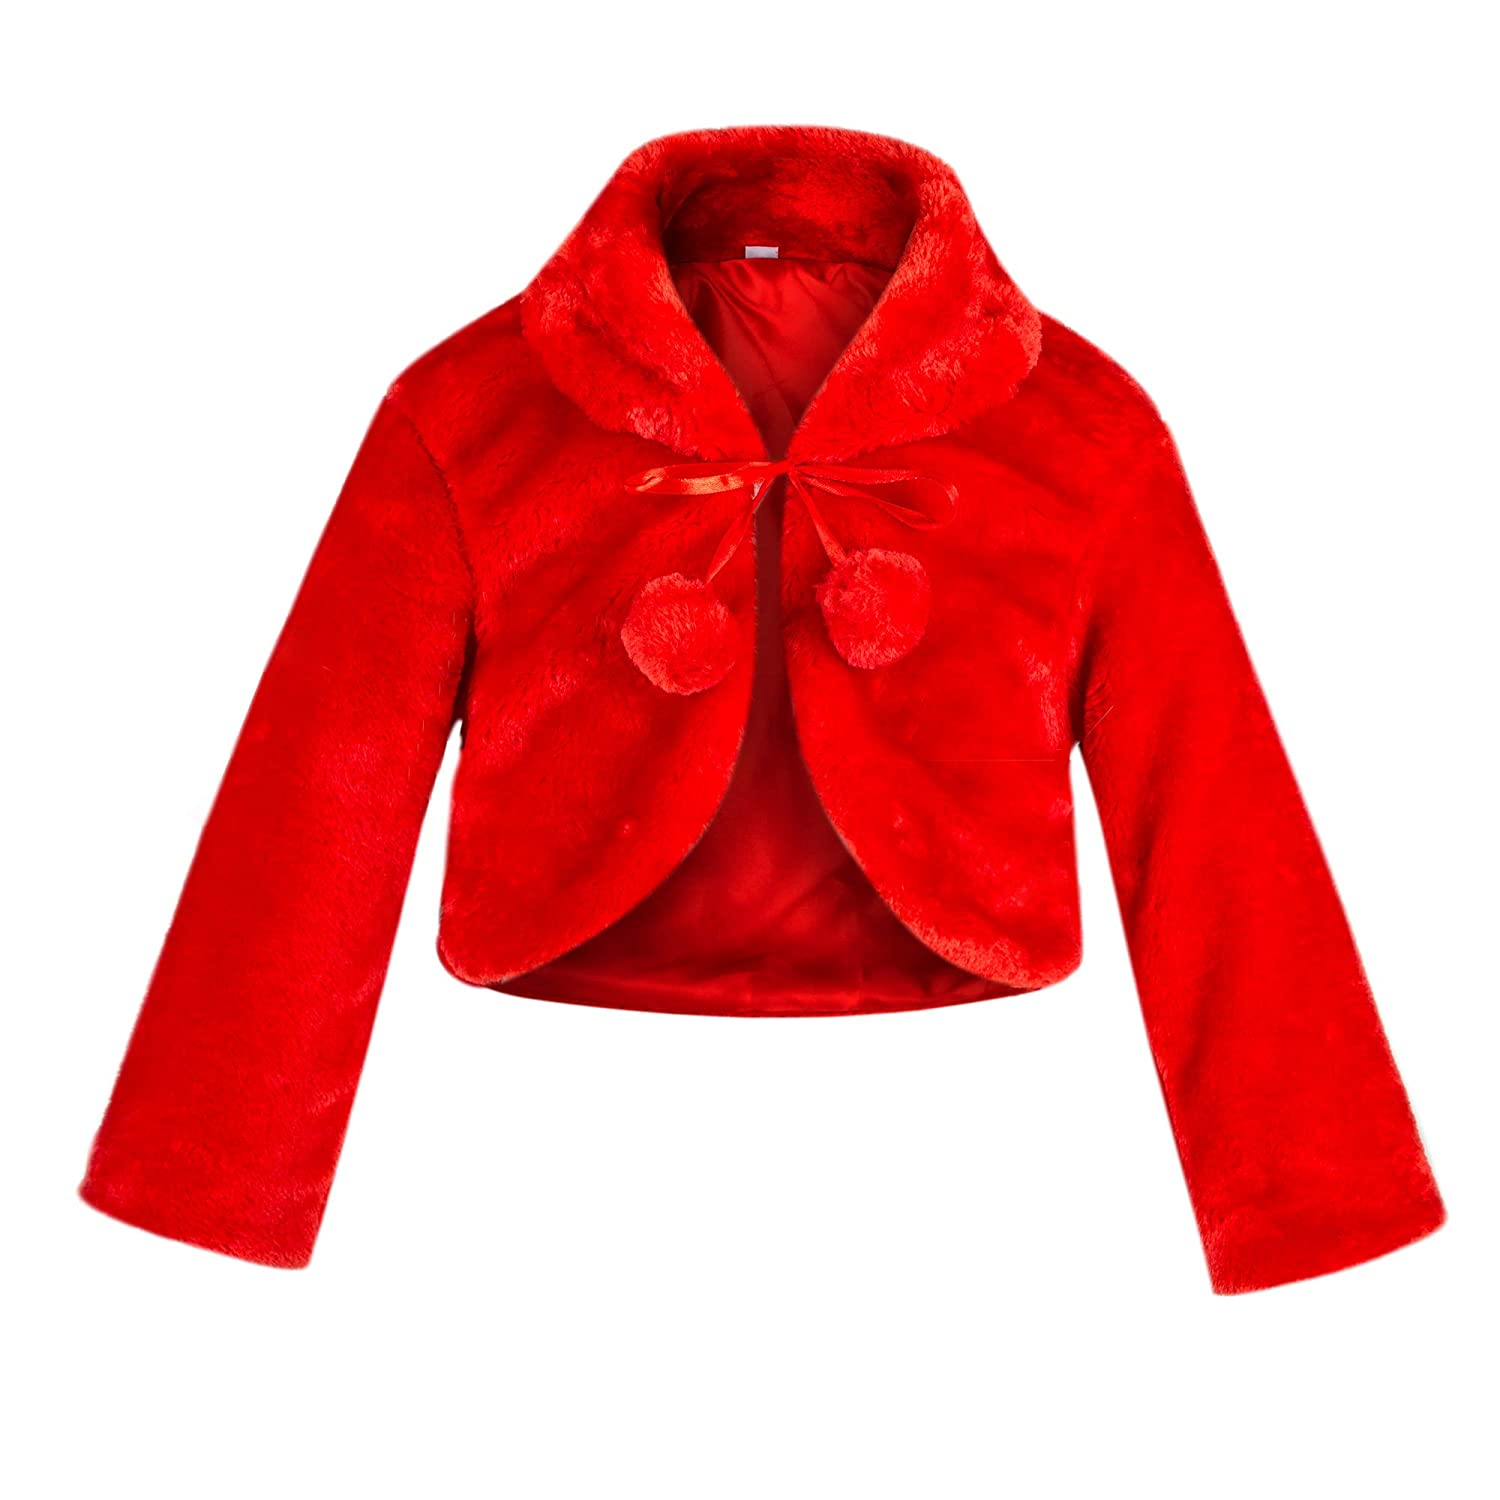 SK Studio Girls Princess Faux Fur Flower Bolero Shrug Party Wedding Dress Up Red SK-PJ-0002-2-2-L